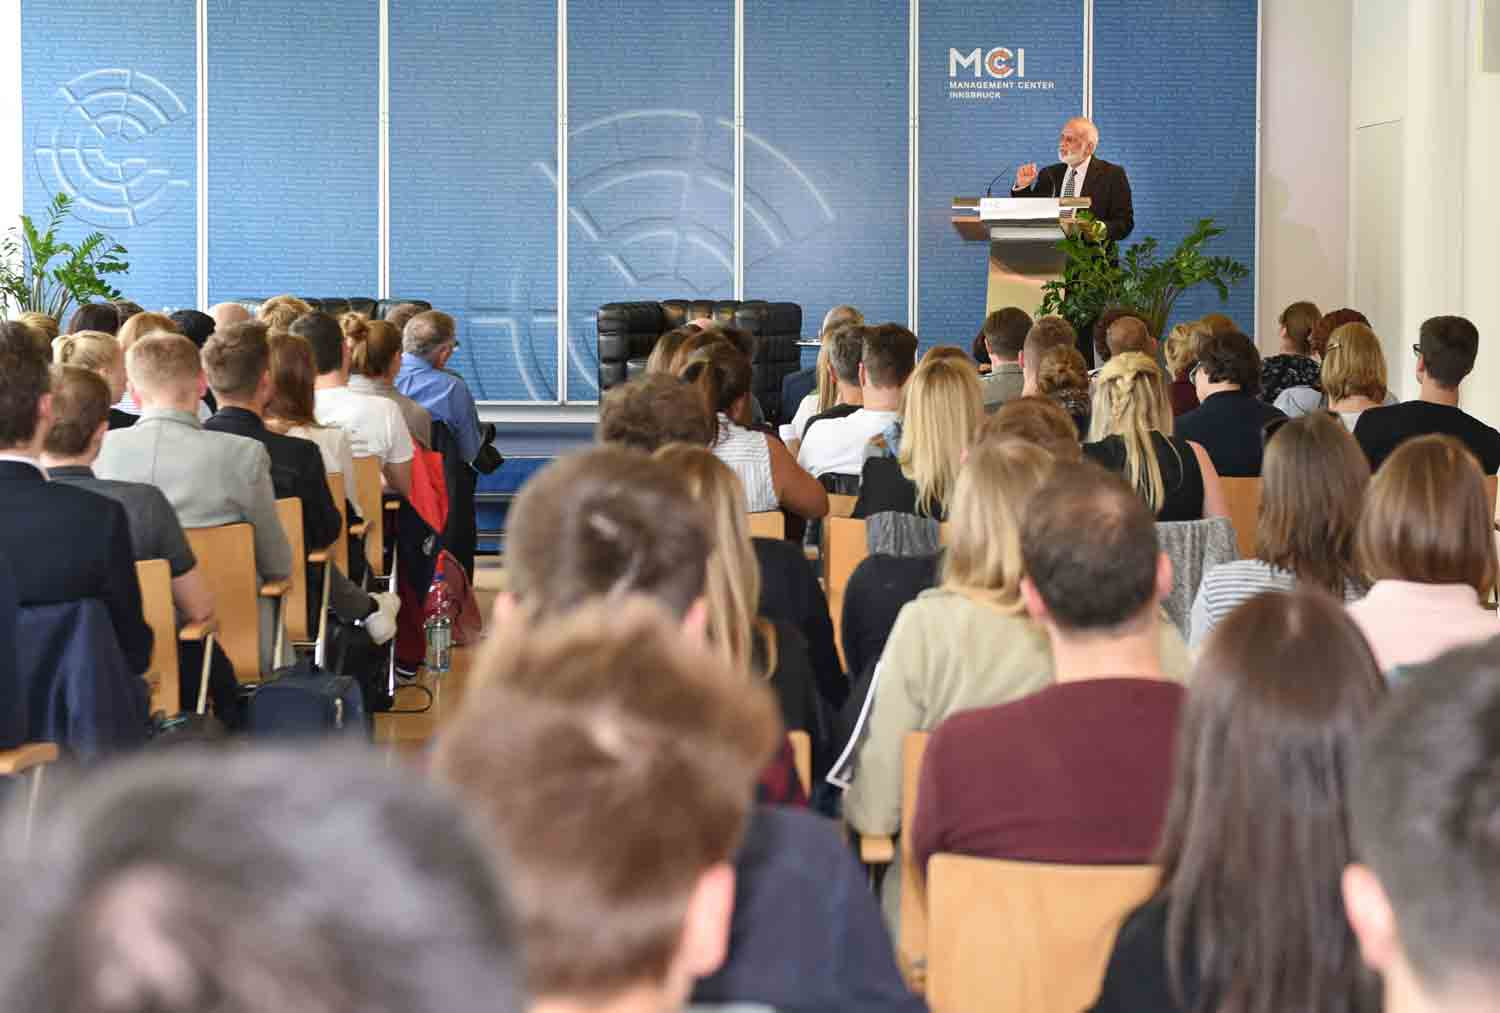 Since the beginning of the academic lecture series, around 500 personalities of distinction have graced the MCI. Photo: MCI